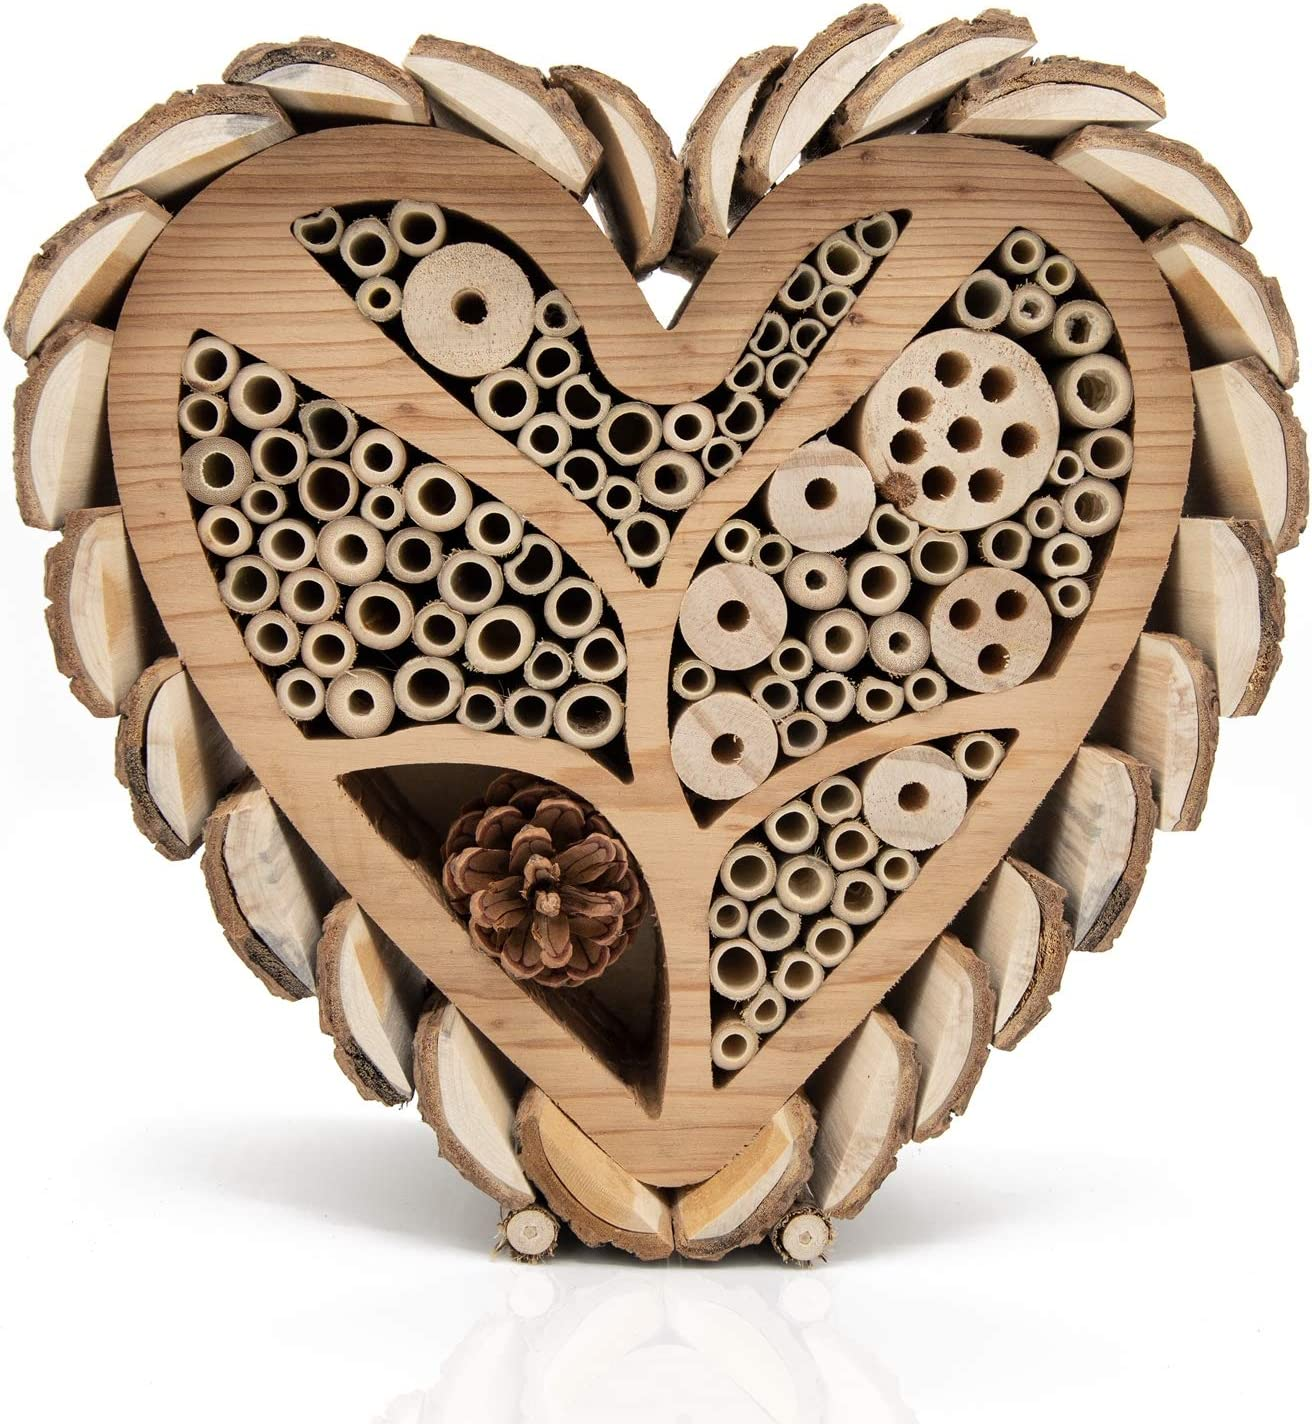 Mason Bee House for Outdoors - Large Heart - Shaped Bee and Insect Hotel - Handmade with Natural Bark, Cedar Wood & Bamboo Nesting Tubes - Beautiful Bee Houses for The Garden by Bugtique